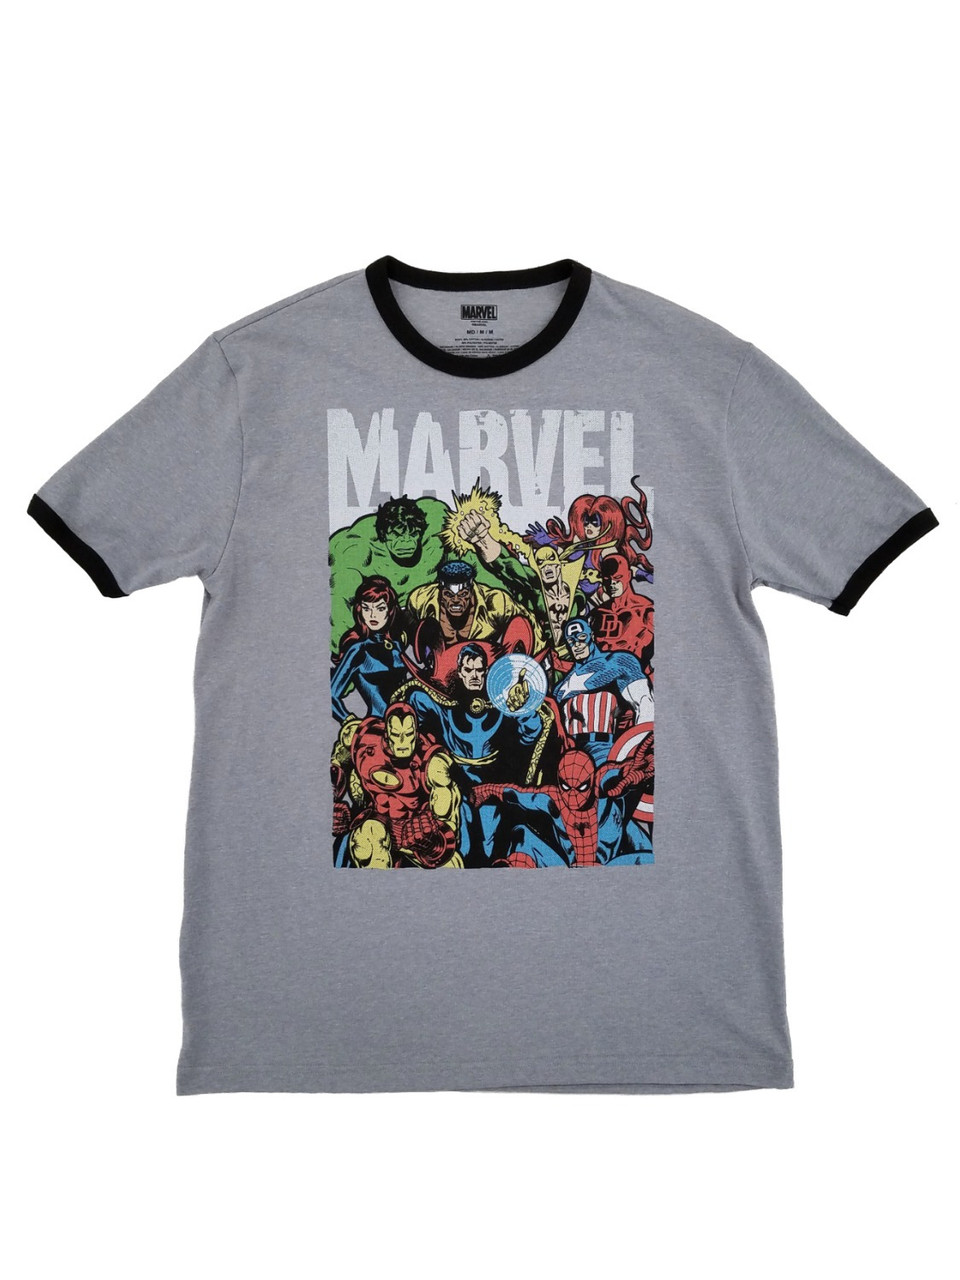 NWT Marvel Comics AVENGERS Red Characters Graphic T-Shirt Men/'s Size Large